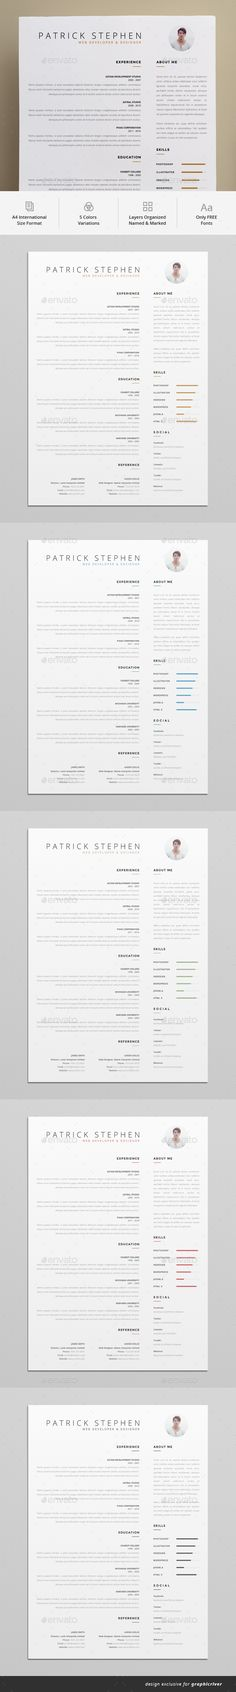 20 Best And Worst Fonts To Use On Your Resume Fonts, Resume - resume fonts to use